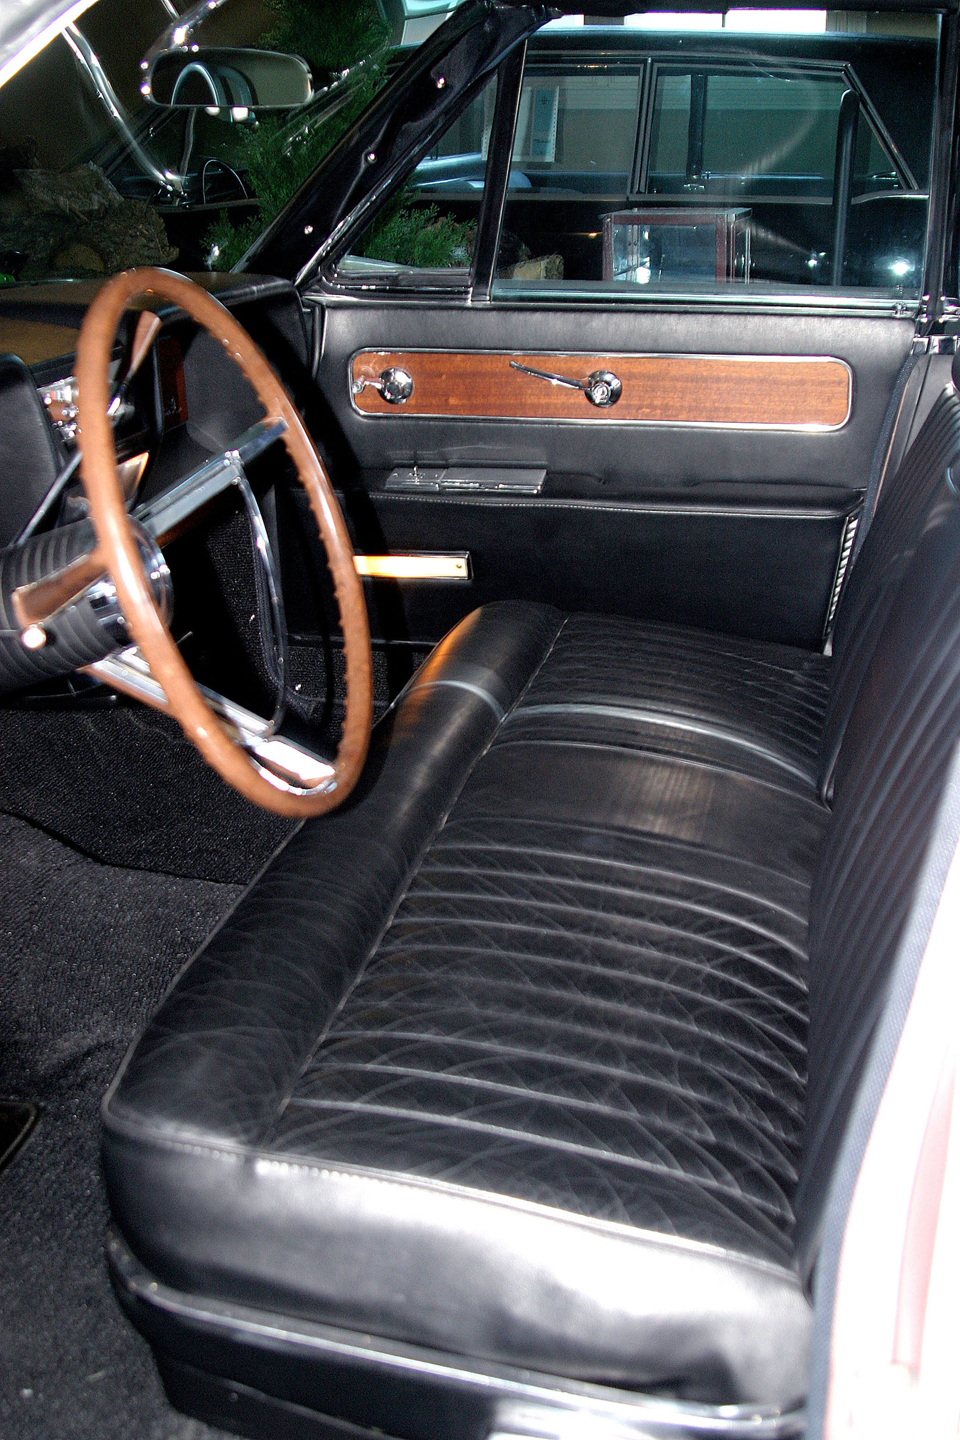 1961 LINCOLN CONTINENTAL 4 DOOR HARDTOP - Interior - 49652